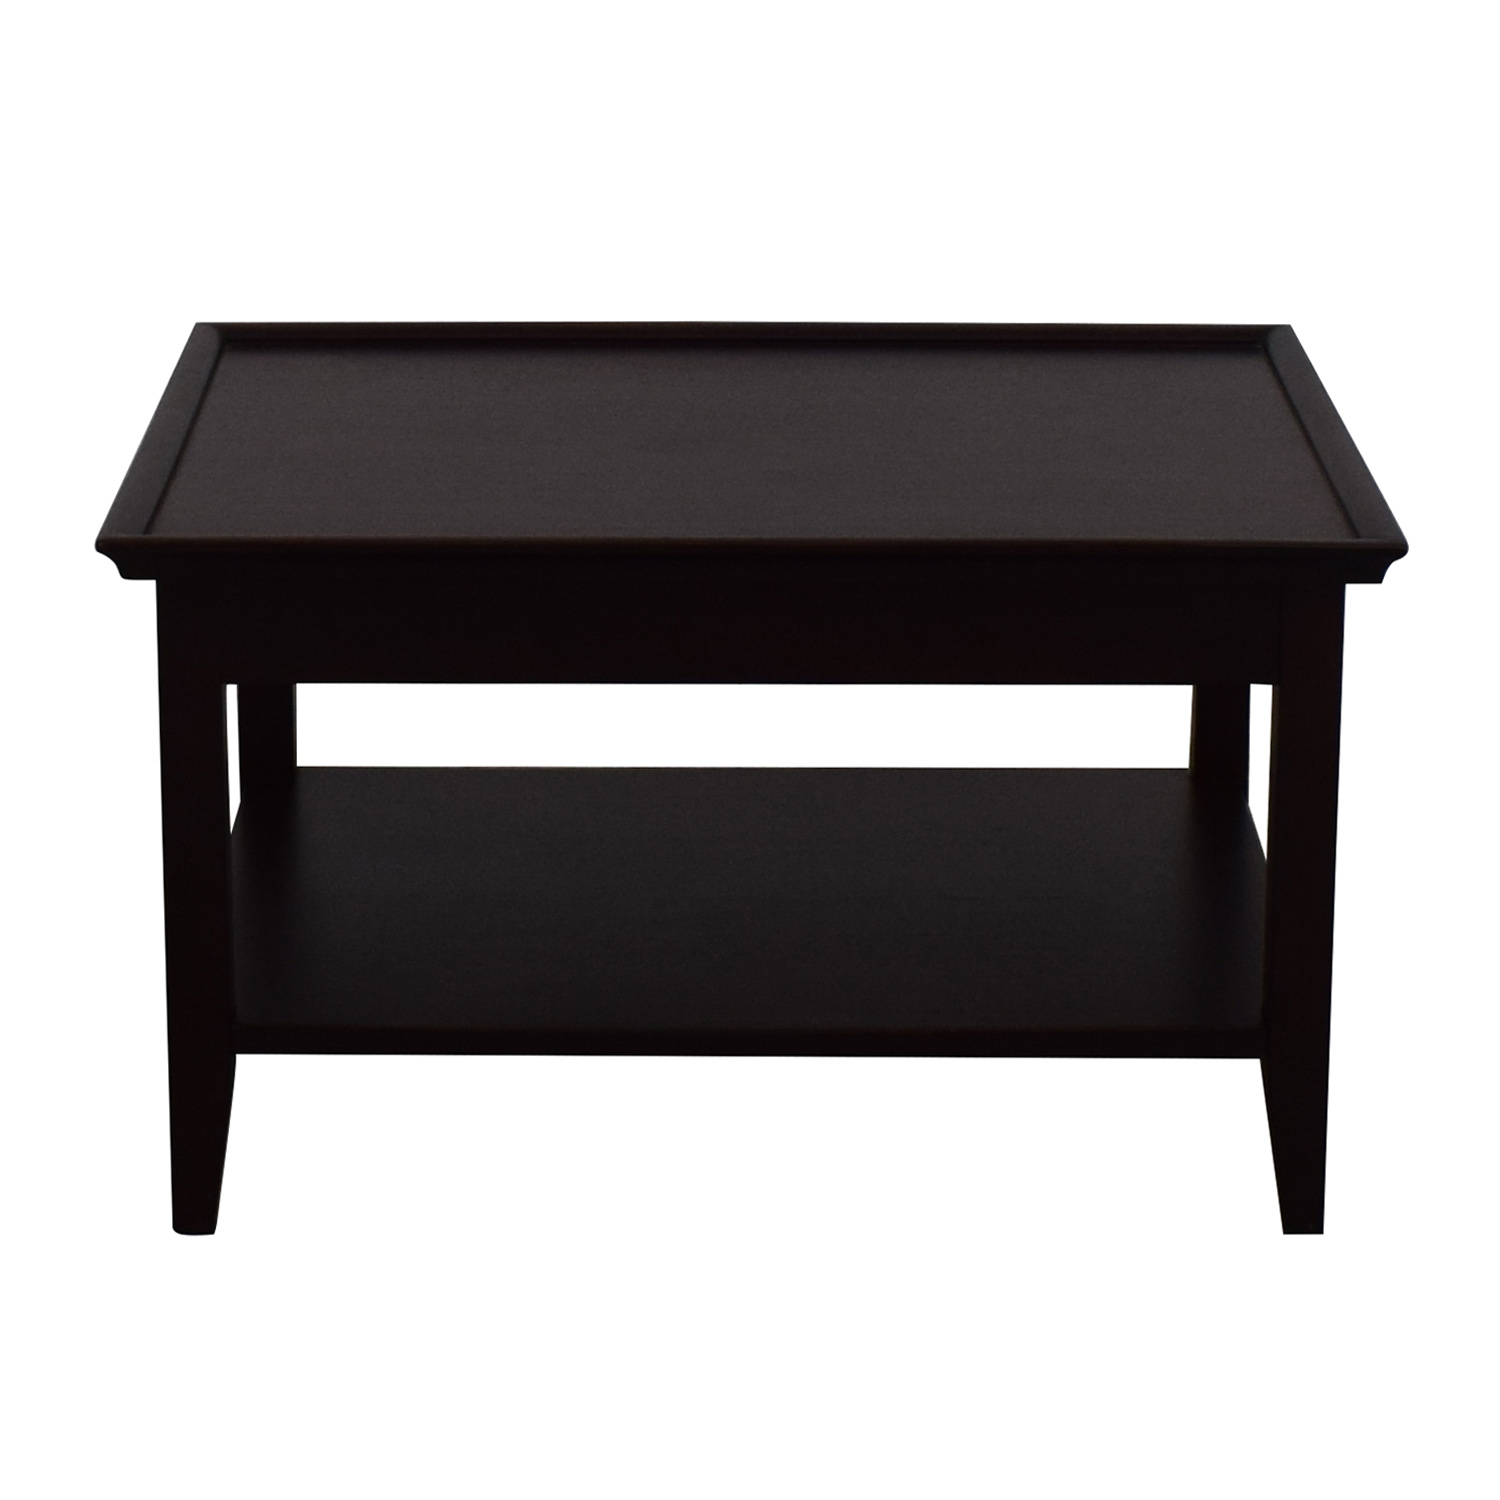 Crate & Barrel Crate & Barrel Bradshaw Coffee Table price